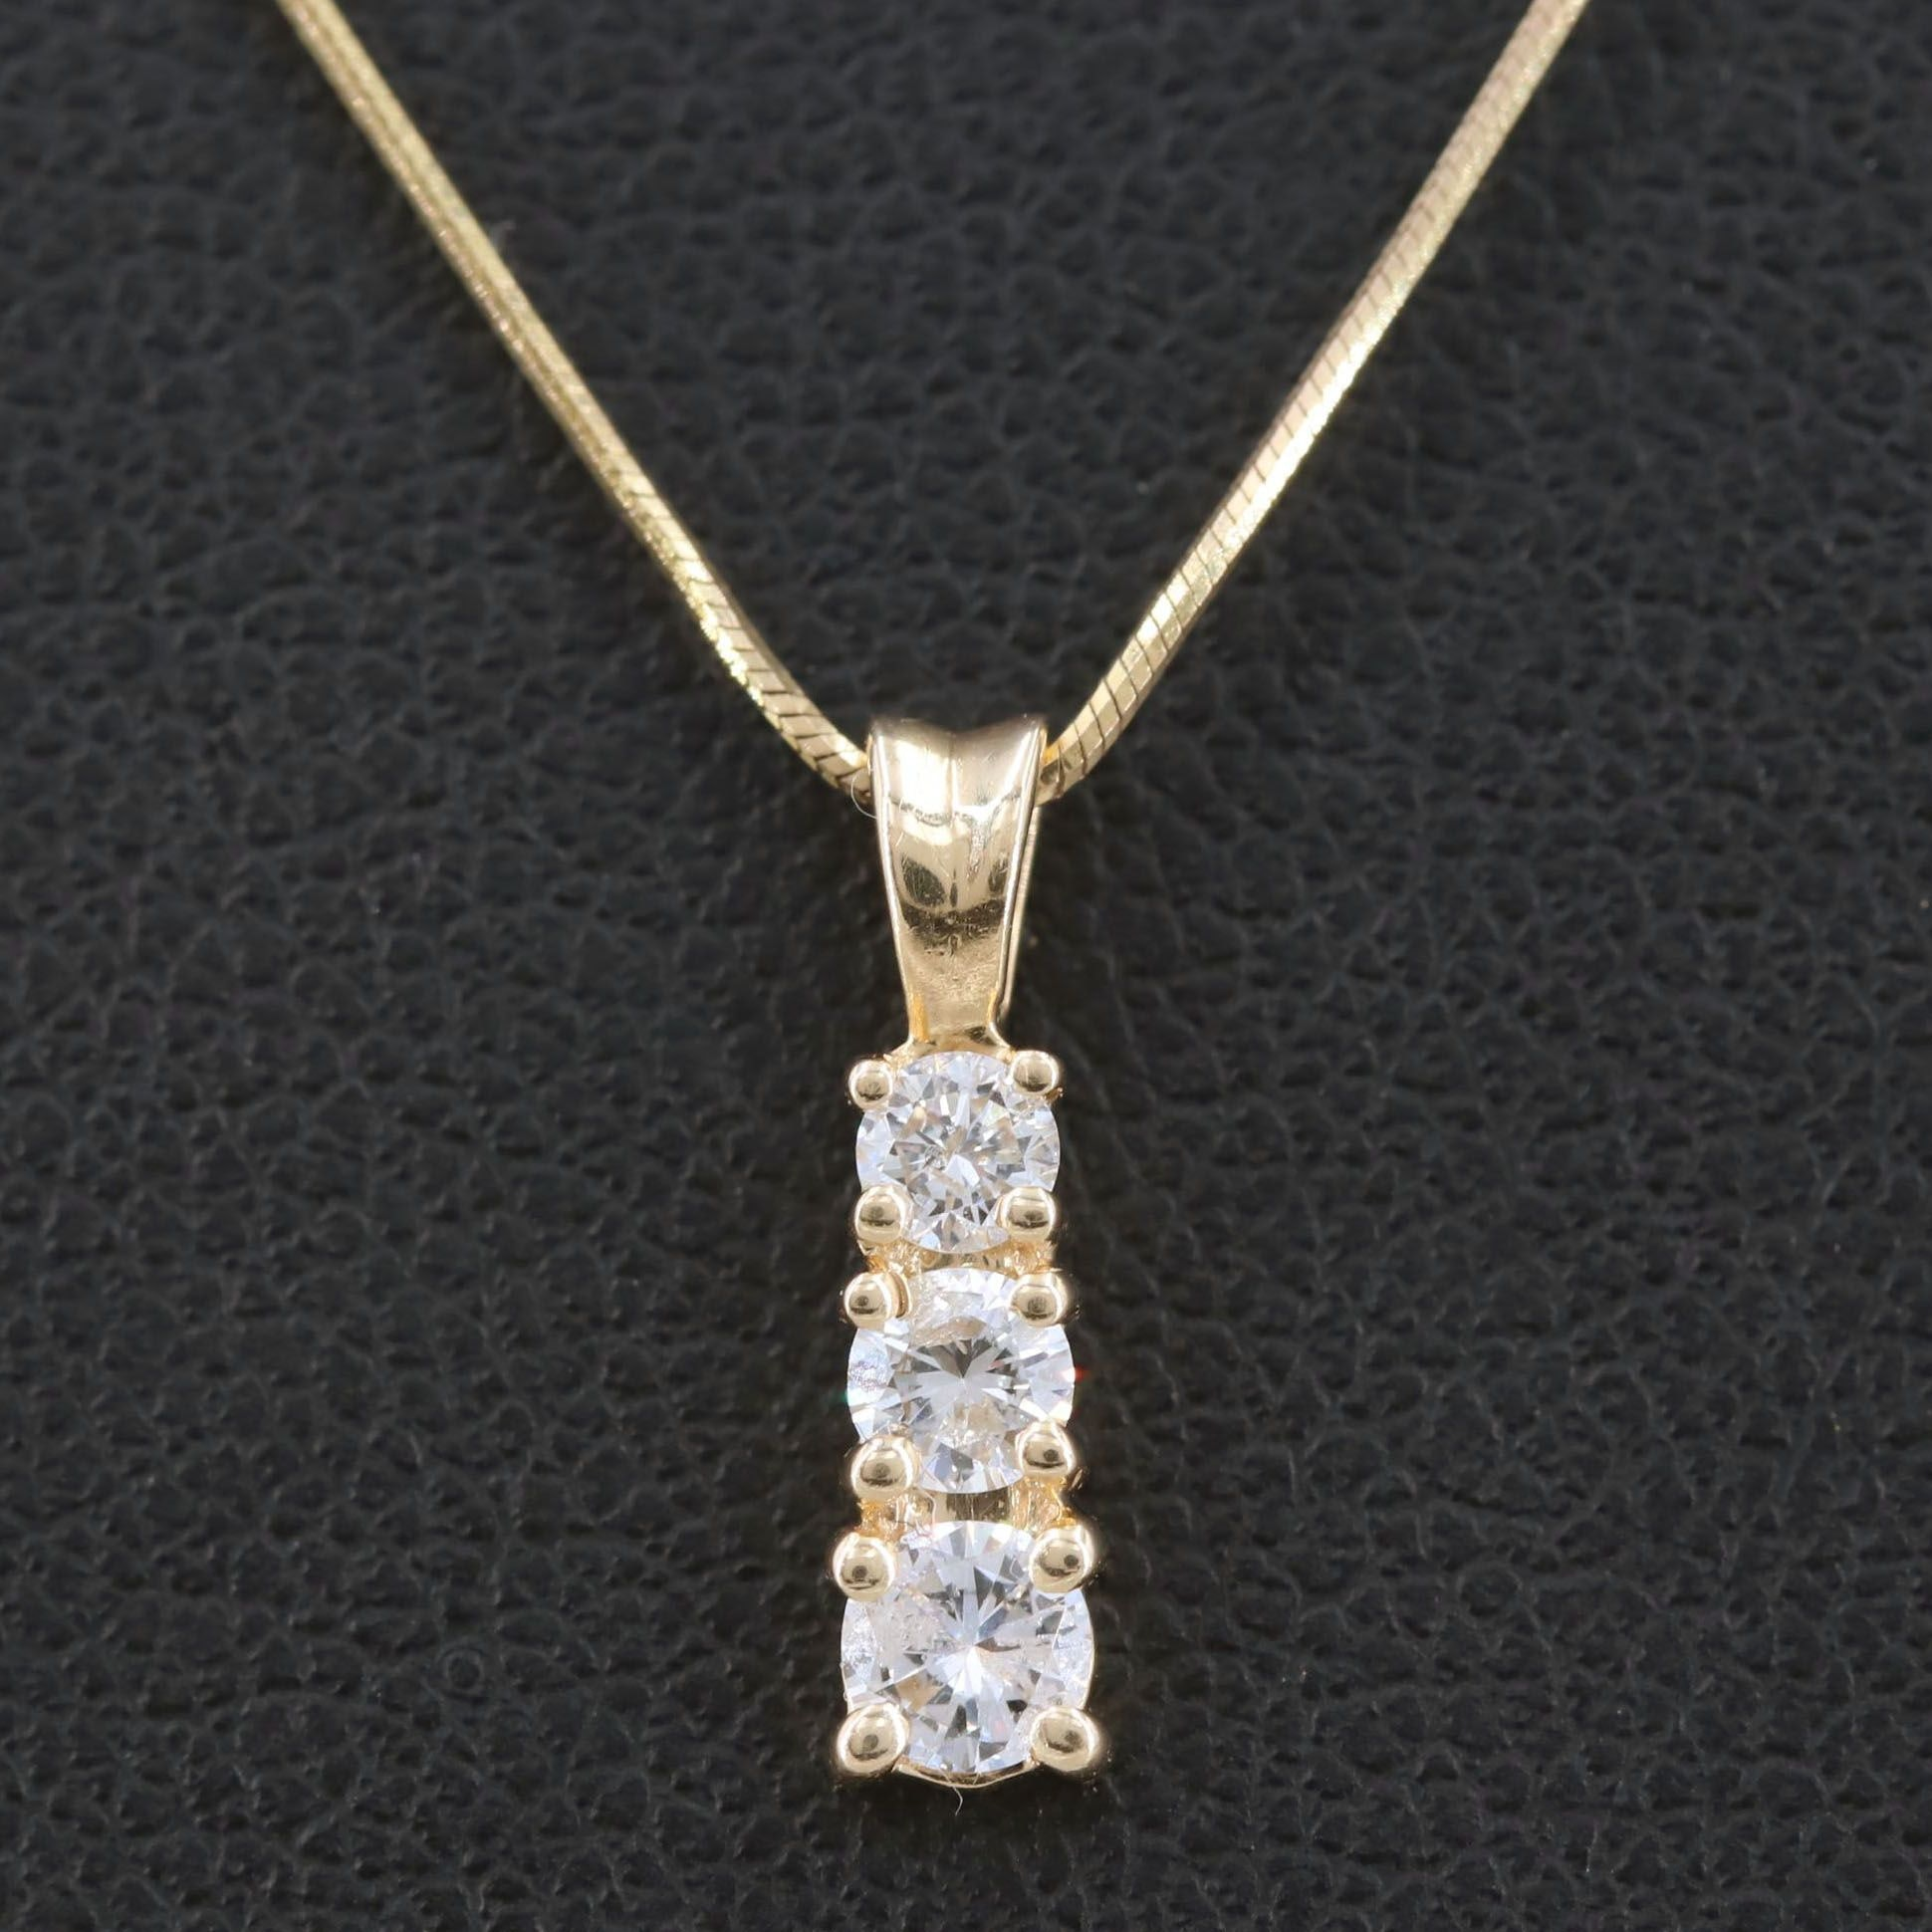 14K Yellow Gold Diamond Pendant with 10K Yellow Gold Chain Necklace